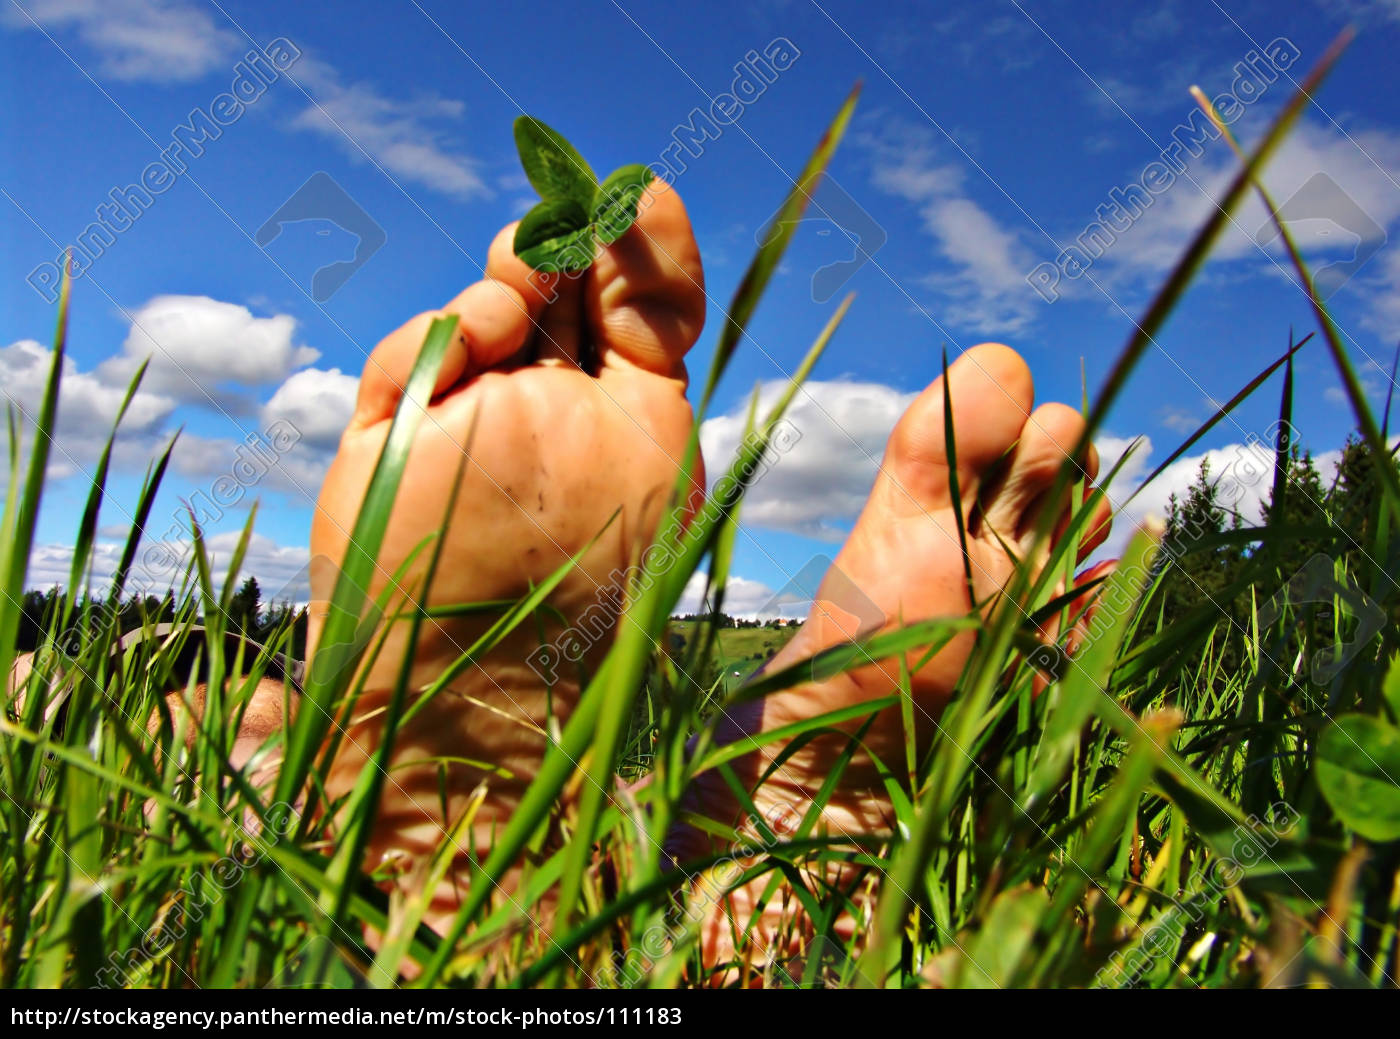 feet, during, the, summer, in, the - 111183